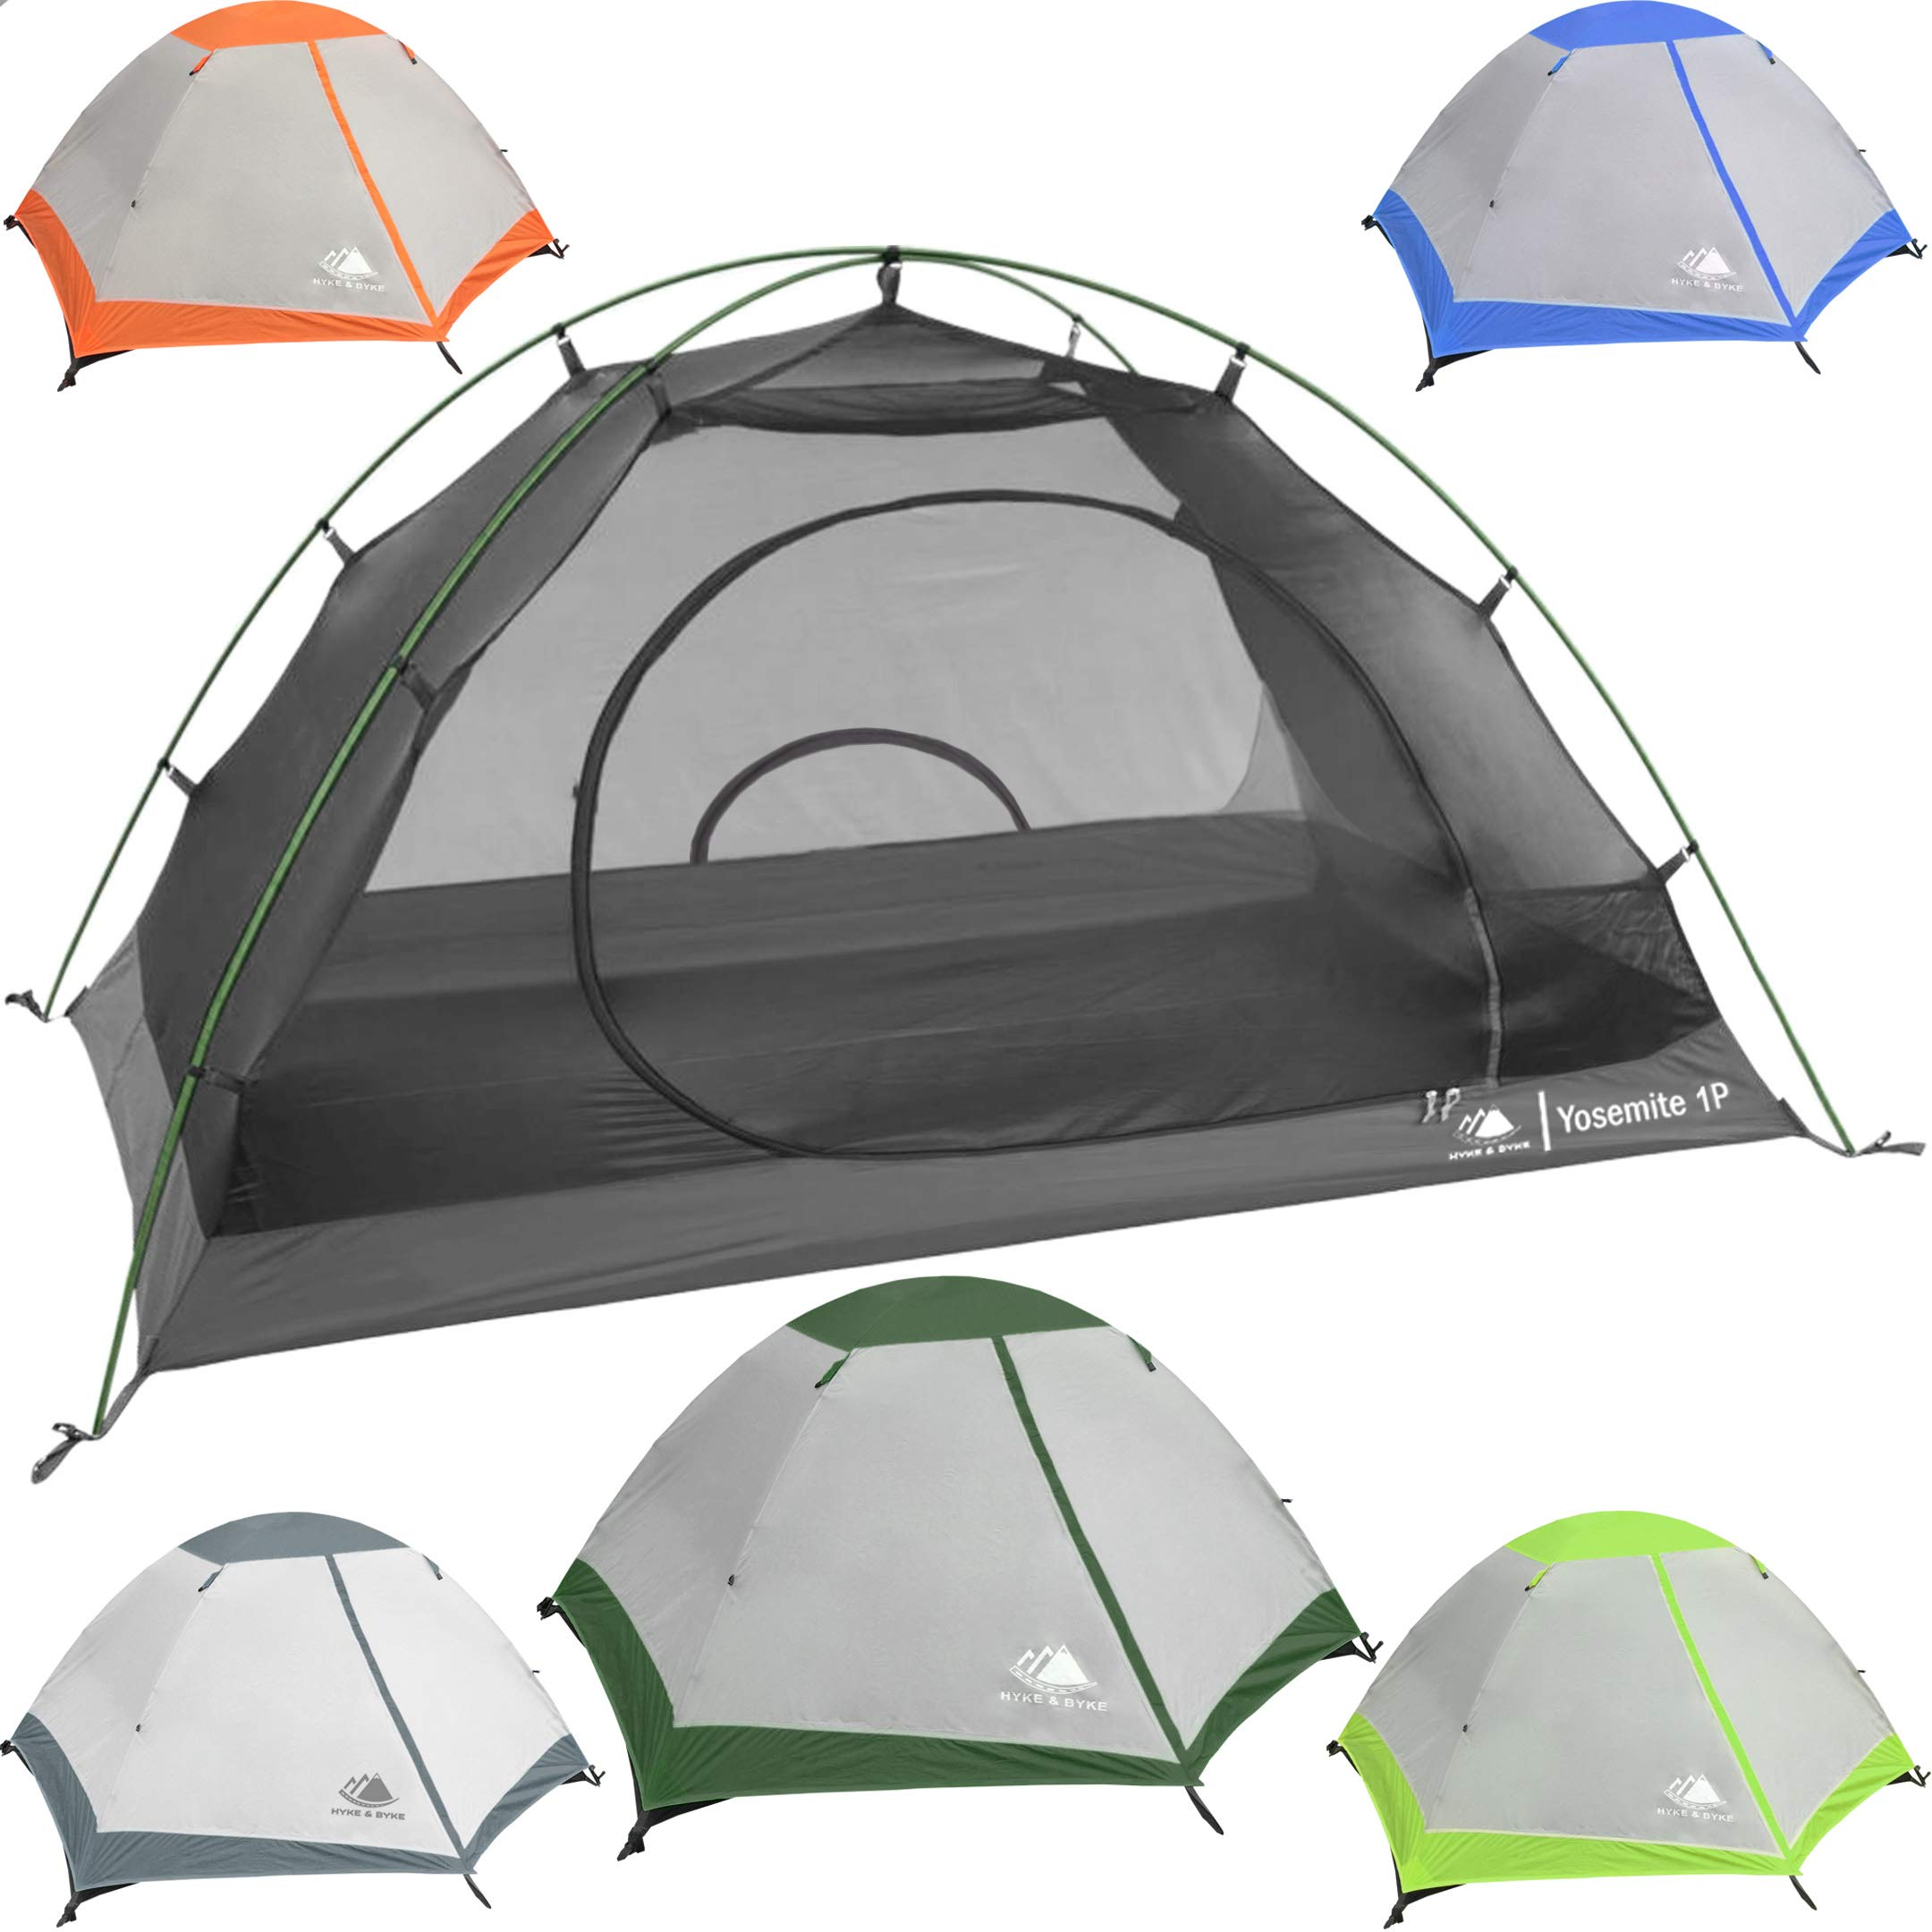 Hyke & Byke 1 Person Backpacking Tent with Footprint - Lightweight Yosemite One Man 3 Season Ultralight, Waterproof, Ultra Compact 1p Freestanding Backpack Tents for Camping and Hiking (Forest Green) by Hyke & Byke